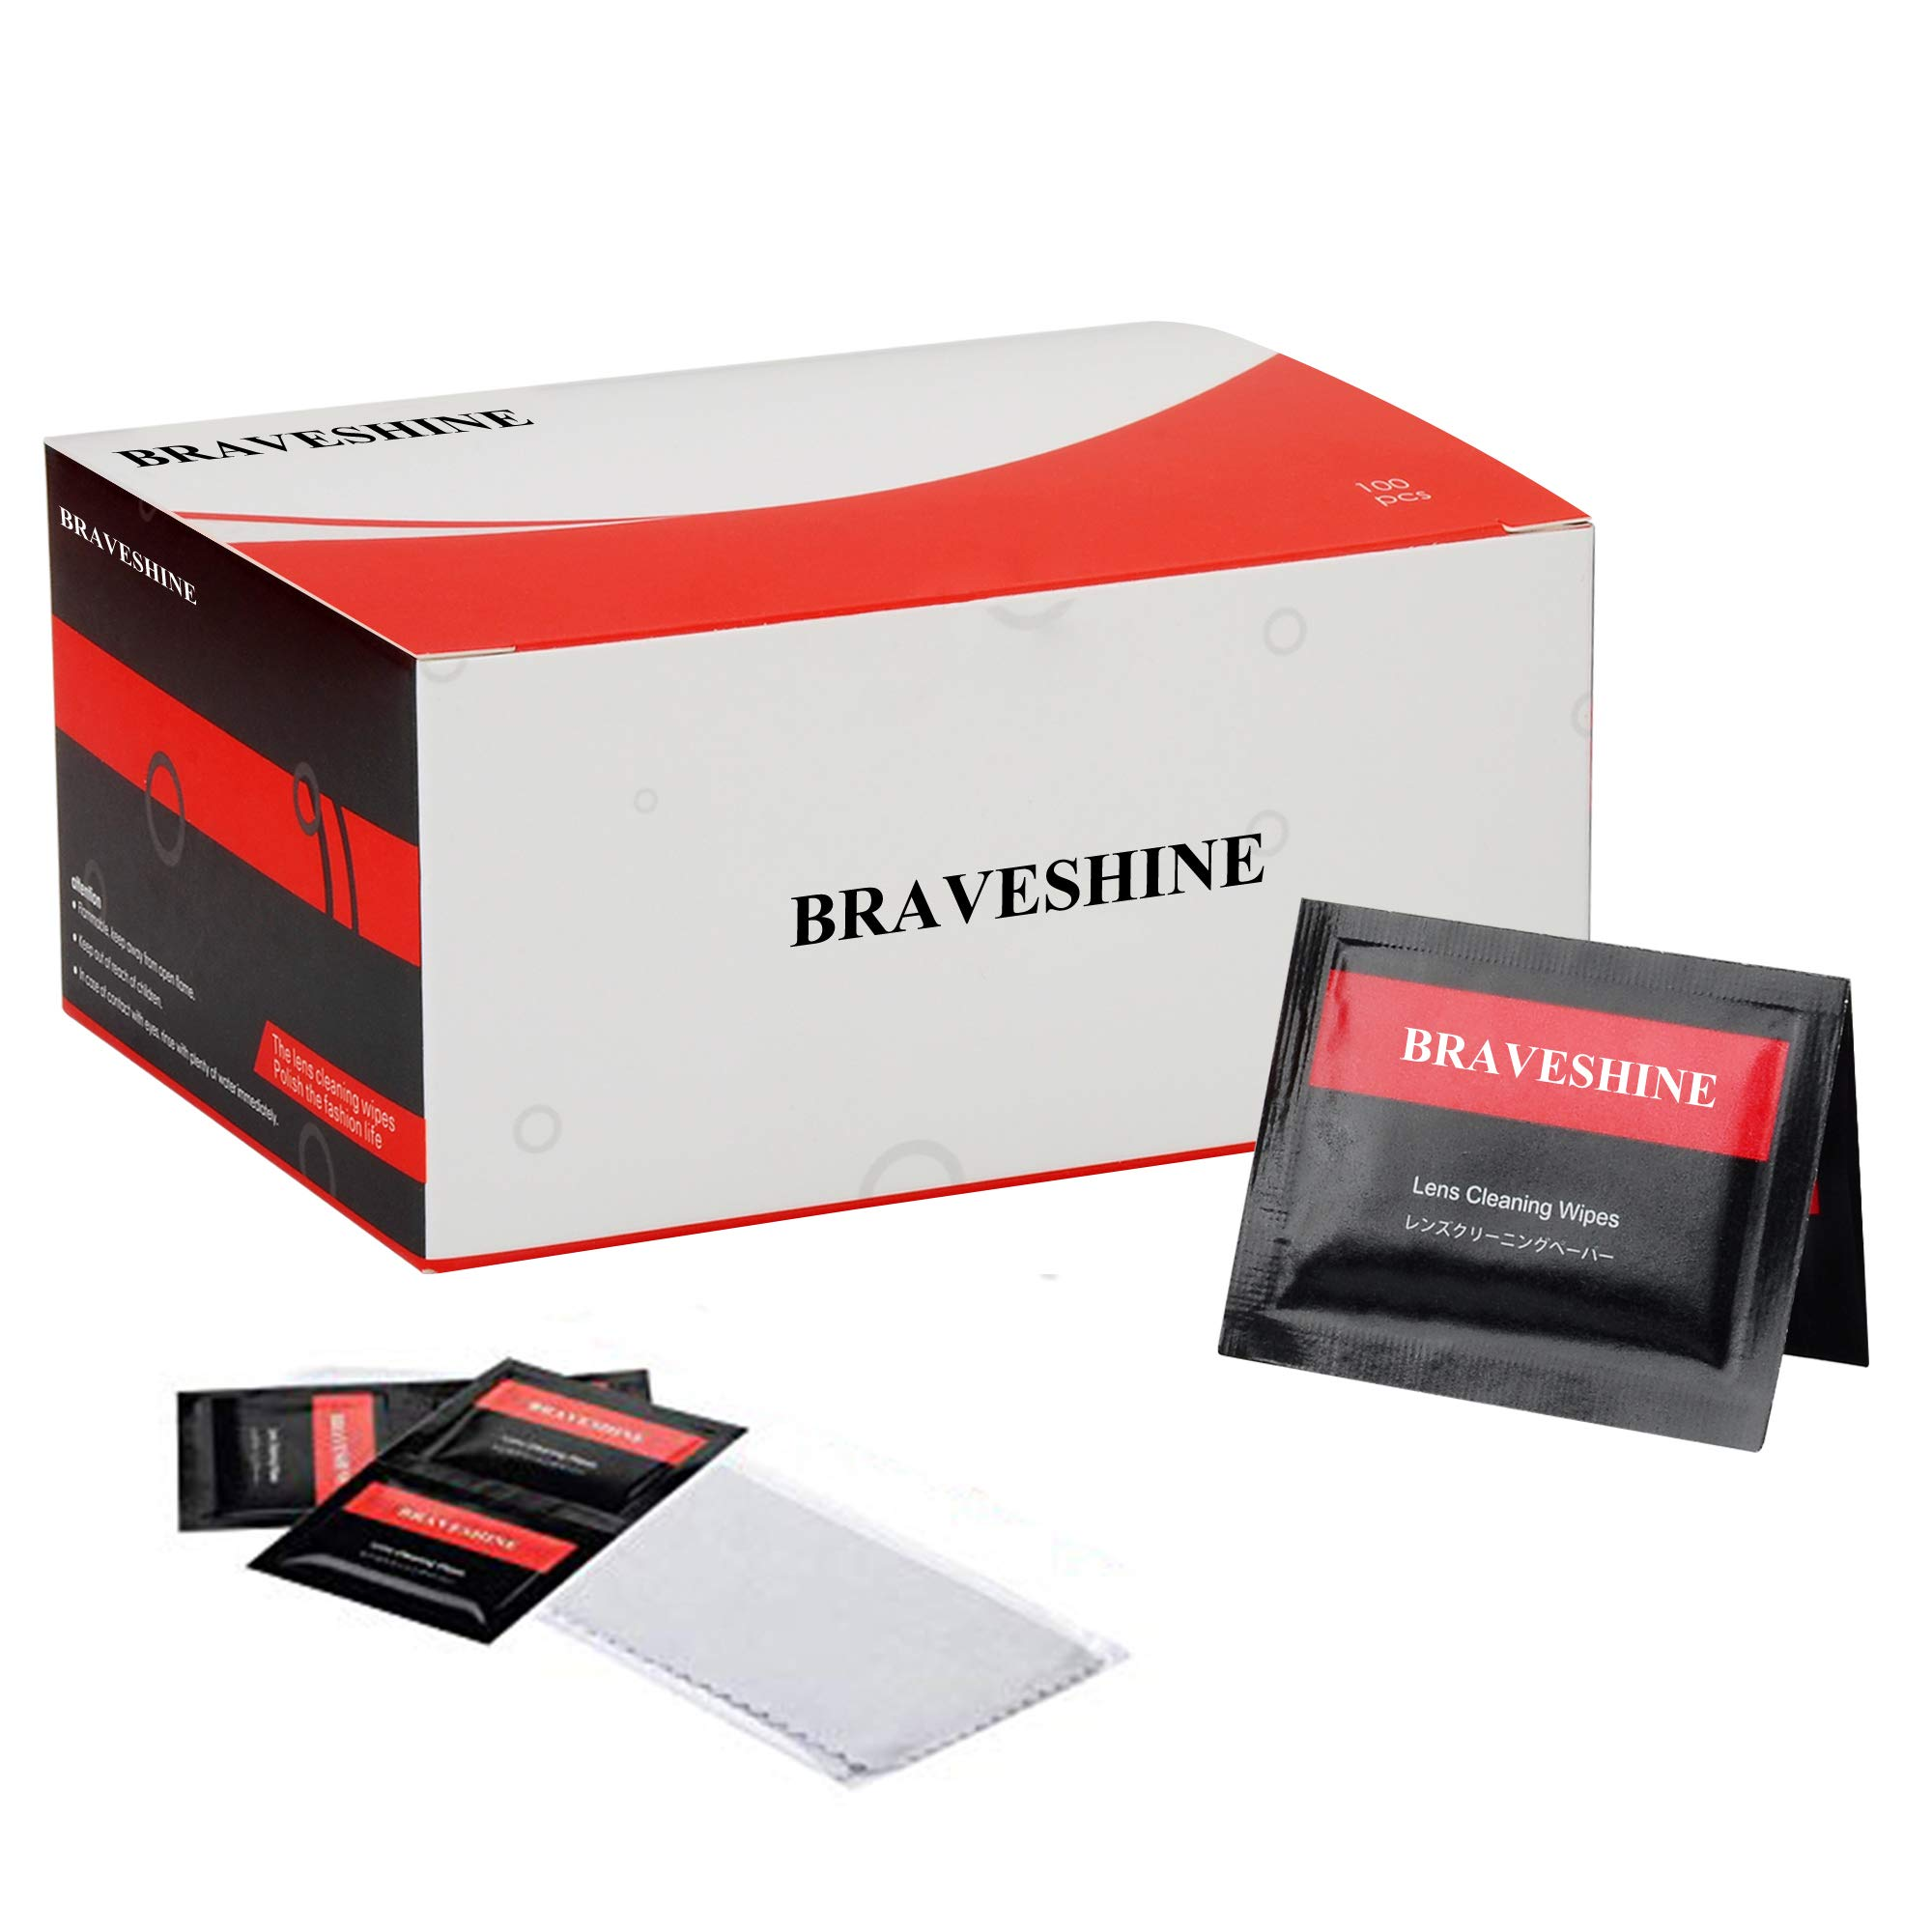 BRAVESHINE Lens Cleaners Eyeglass Wipes - 100 Pack Pre-Moistened Lens Cleaning Wipes - Screen Wipes for Glass Camera TV Tablet Phone Watch Electronics - Individually Wrapped Lense Wipes + 1 Cloths